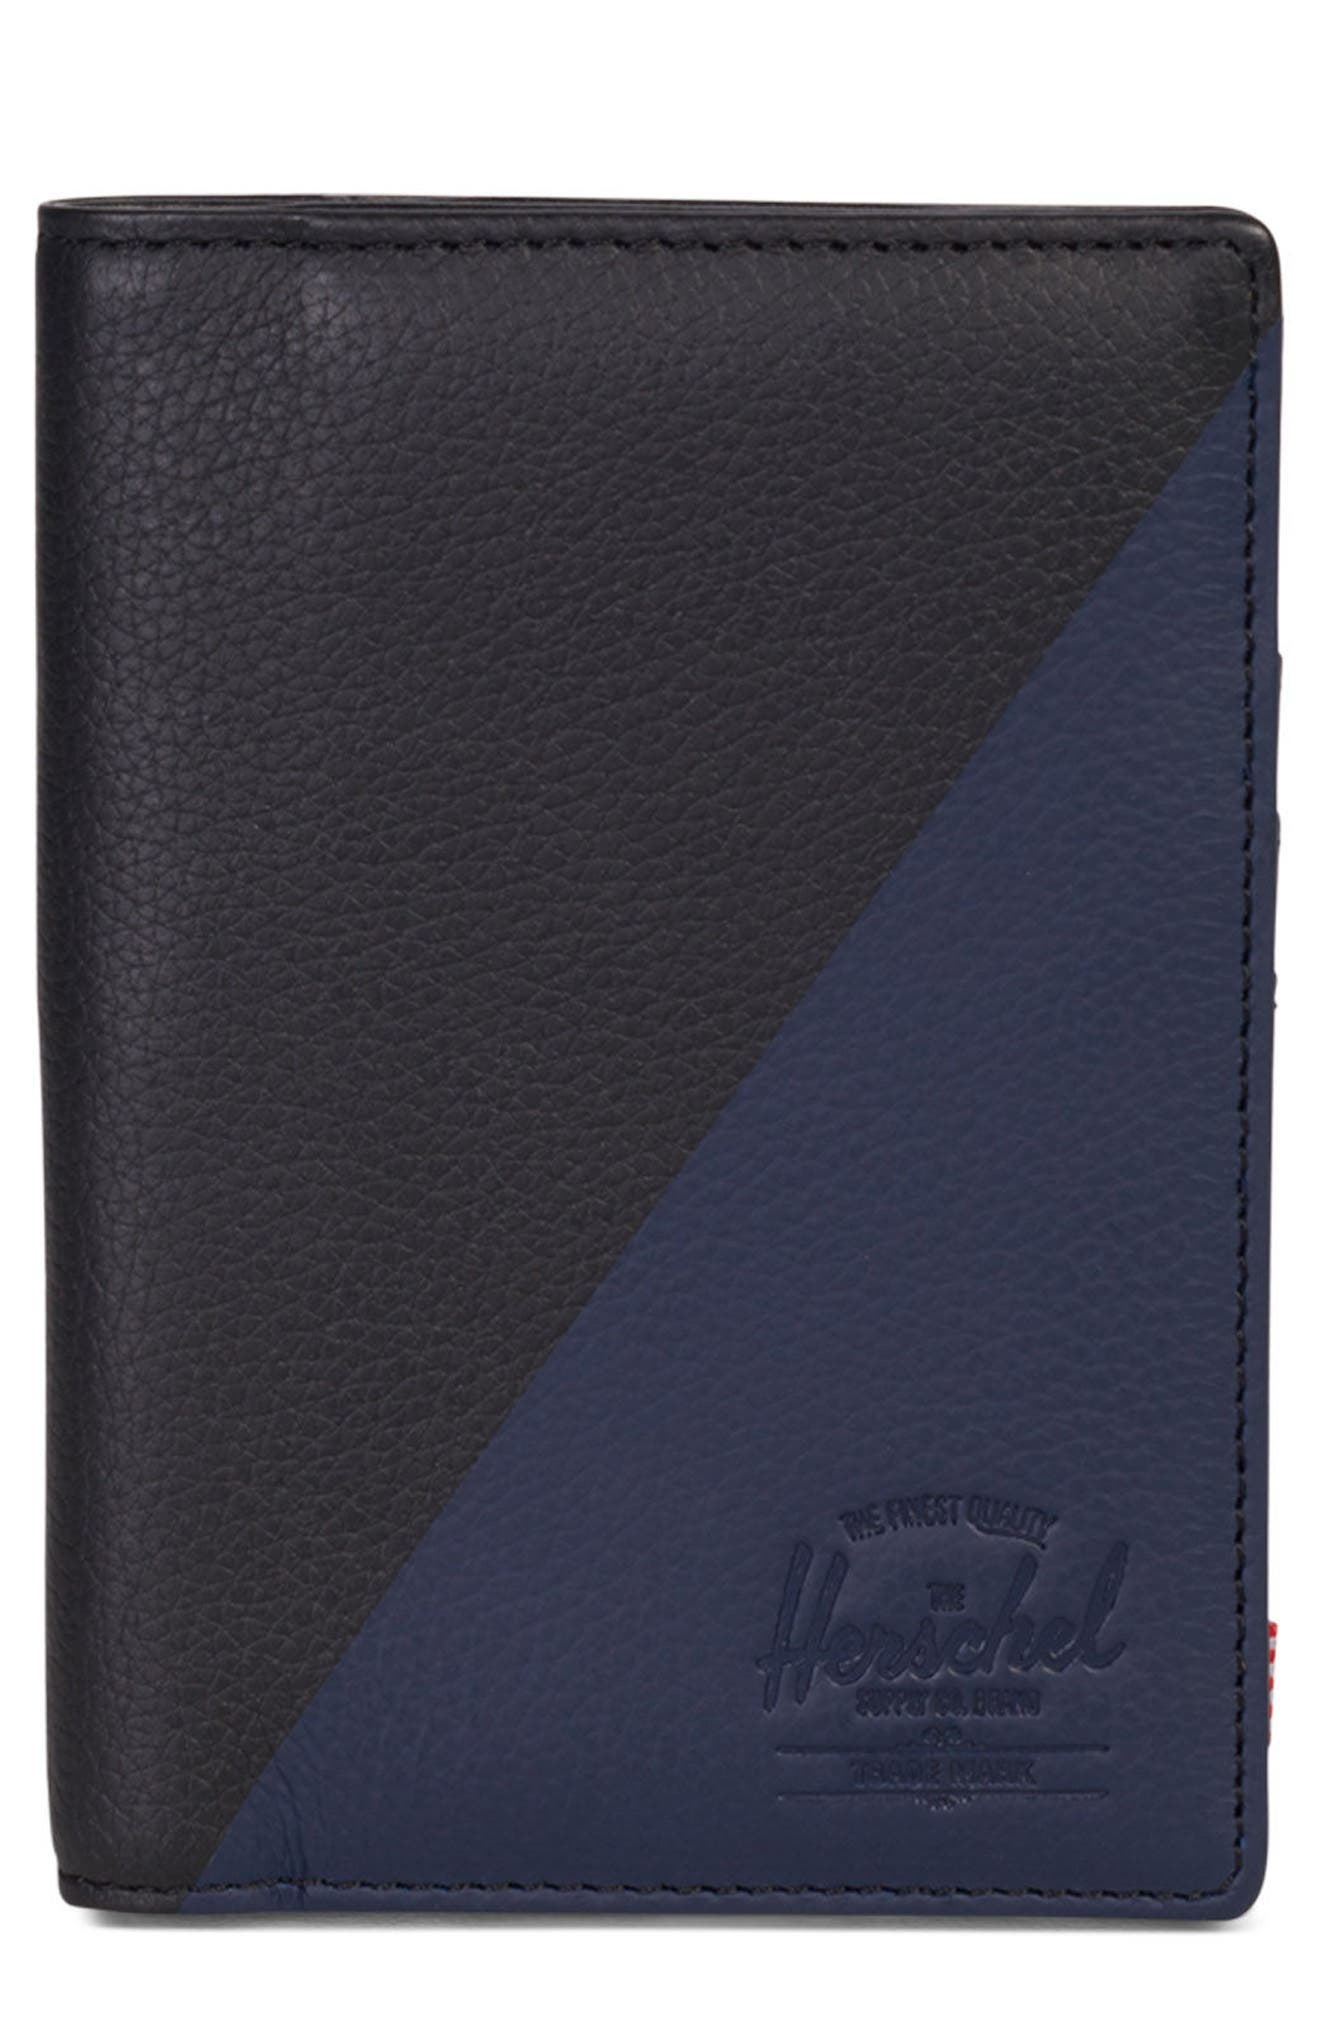 Raynor Offset Leather Wallet,                             Main thumbnail 1, color,                             Black